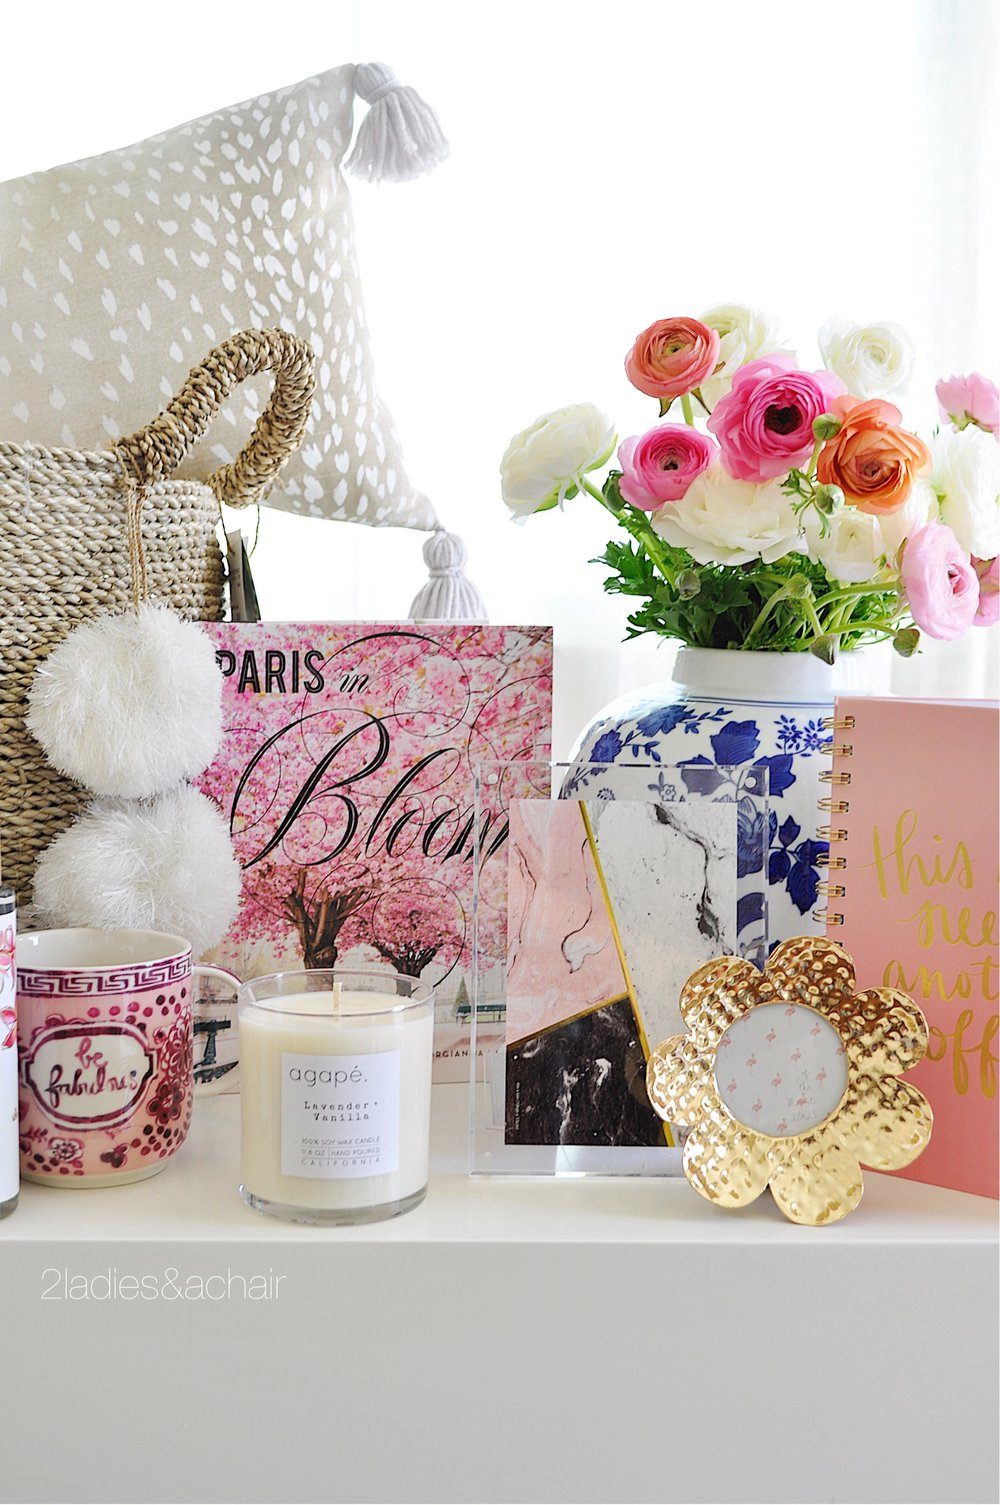 mothers day gift basket ideas IMG_2224.JPG